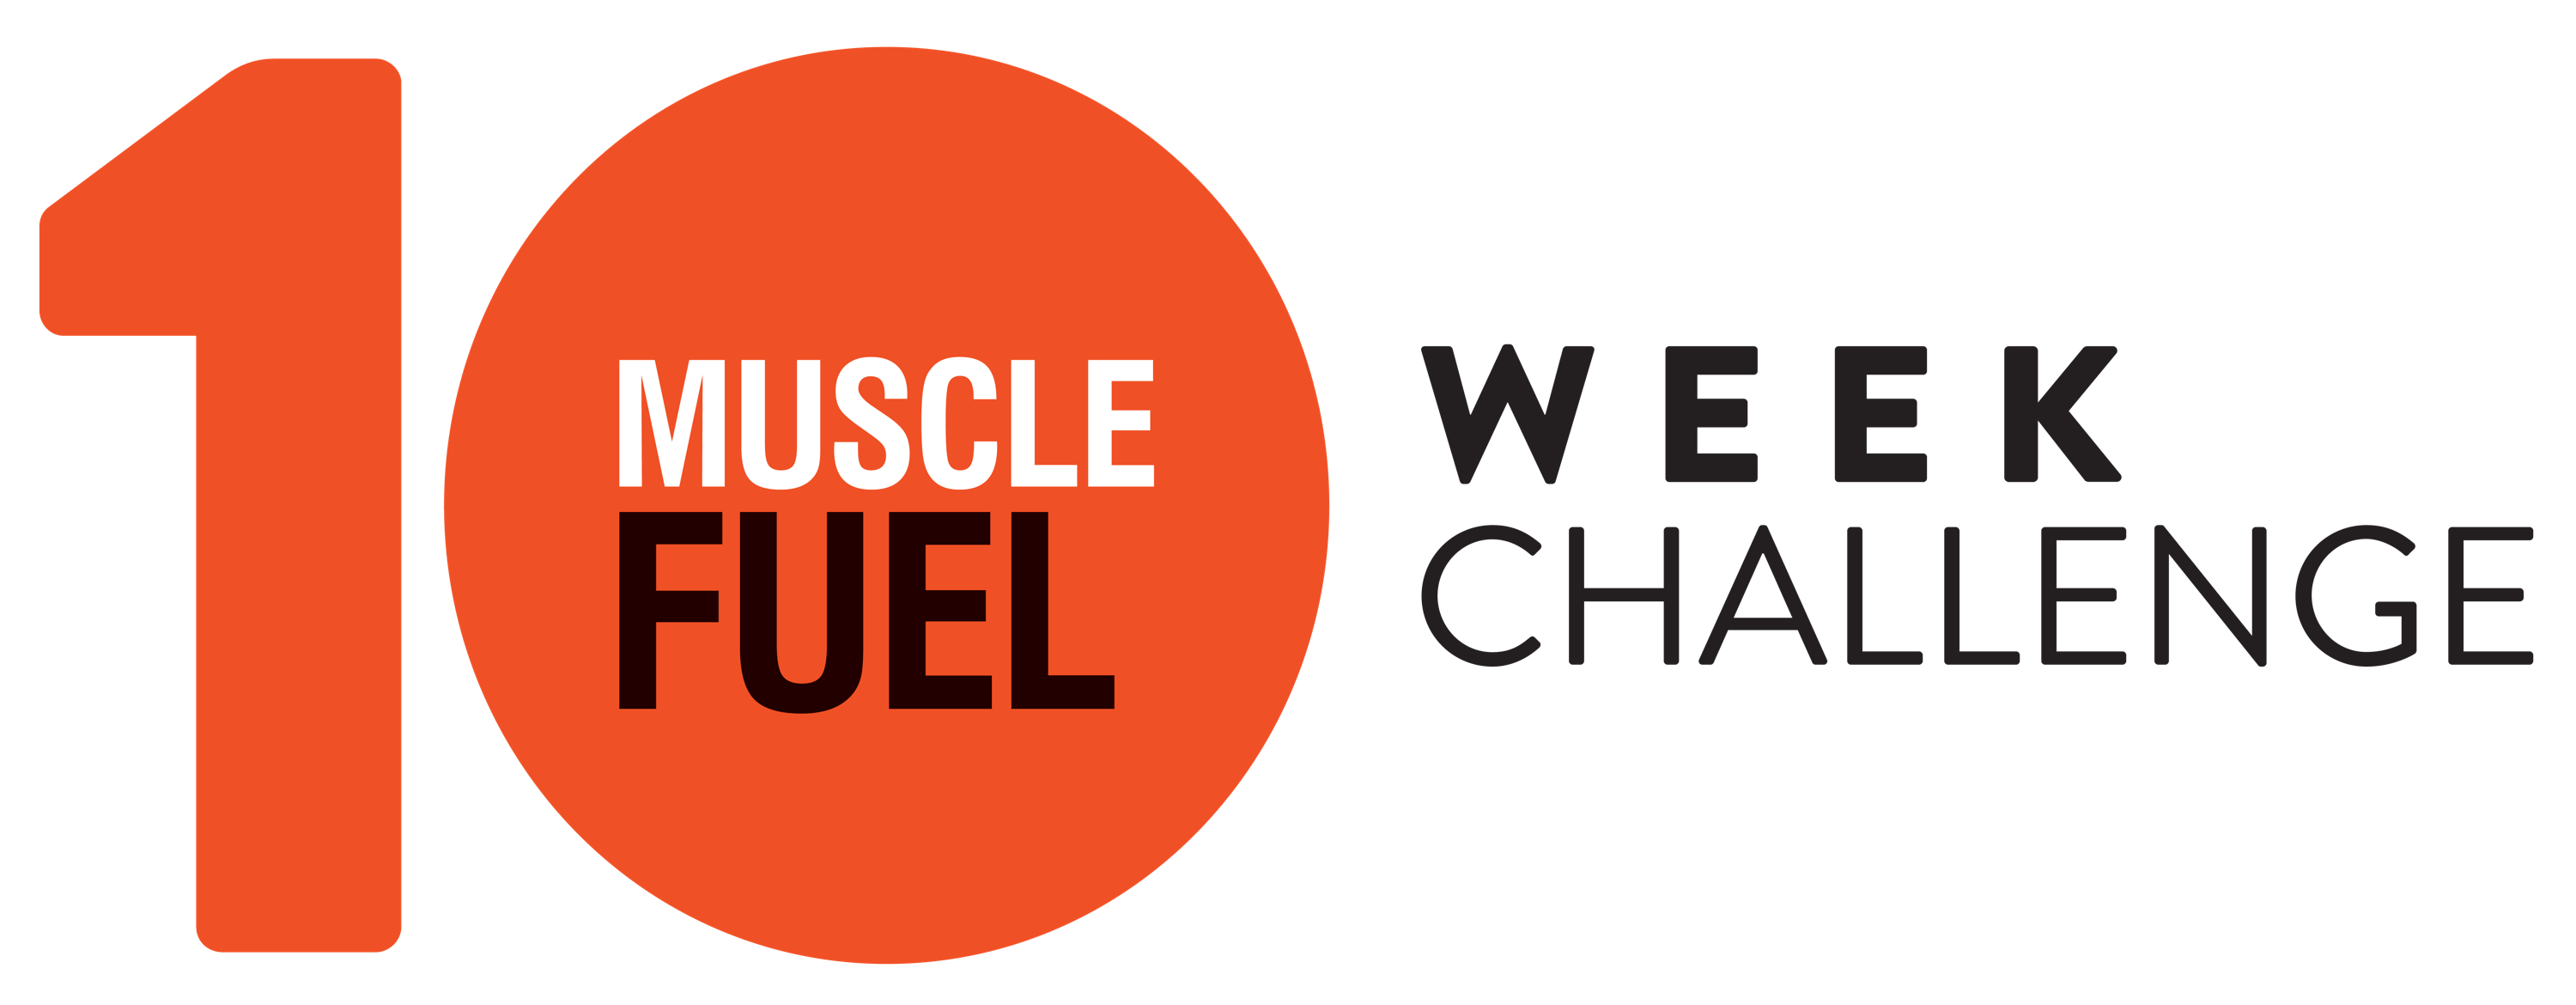 The 10 Week Challenge 2019-04-26 21:49:49 -0700– Muscle Fuel